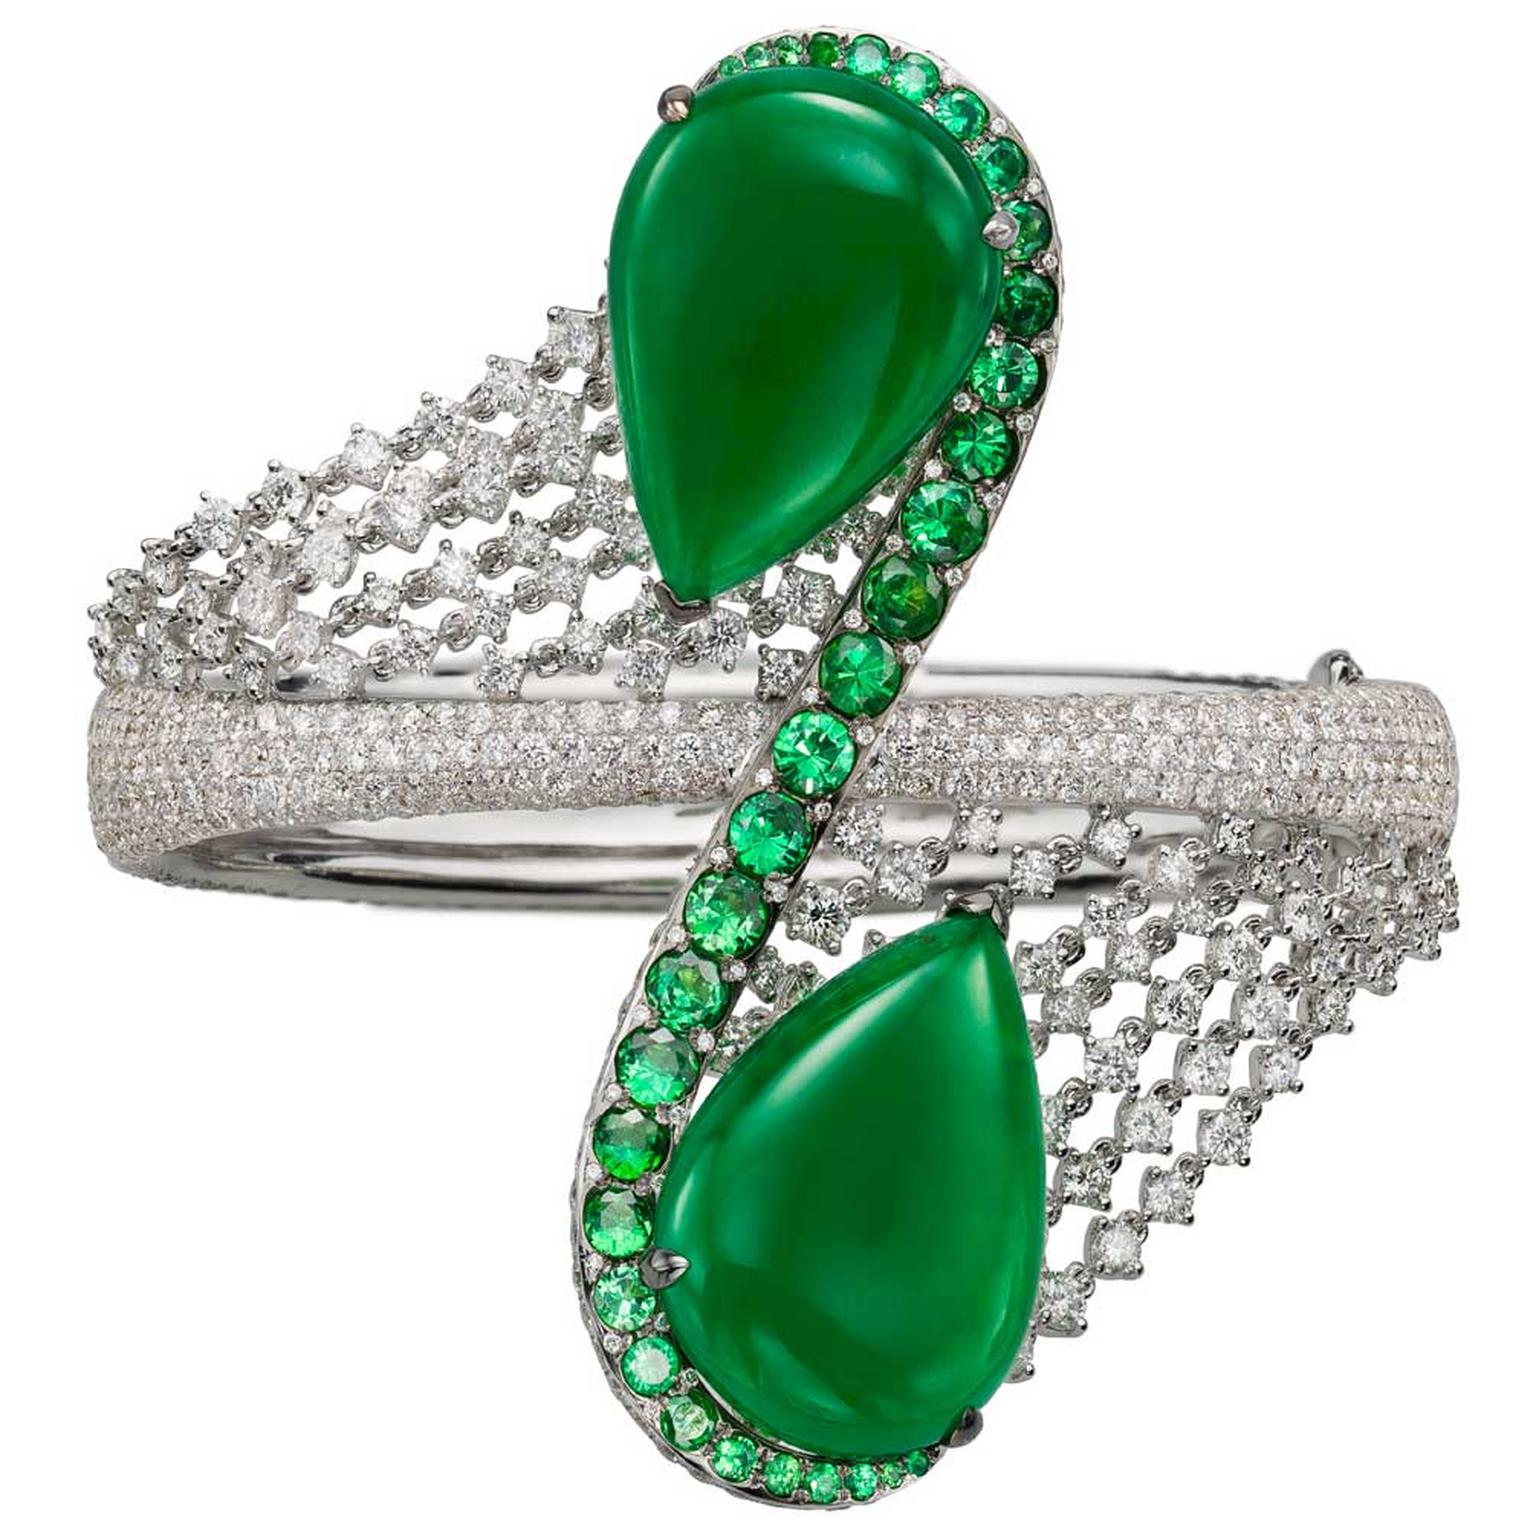 Boghossian diamond and pear-shaped jadeite bracelet